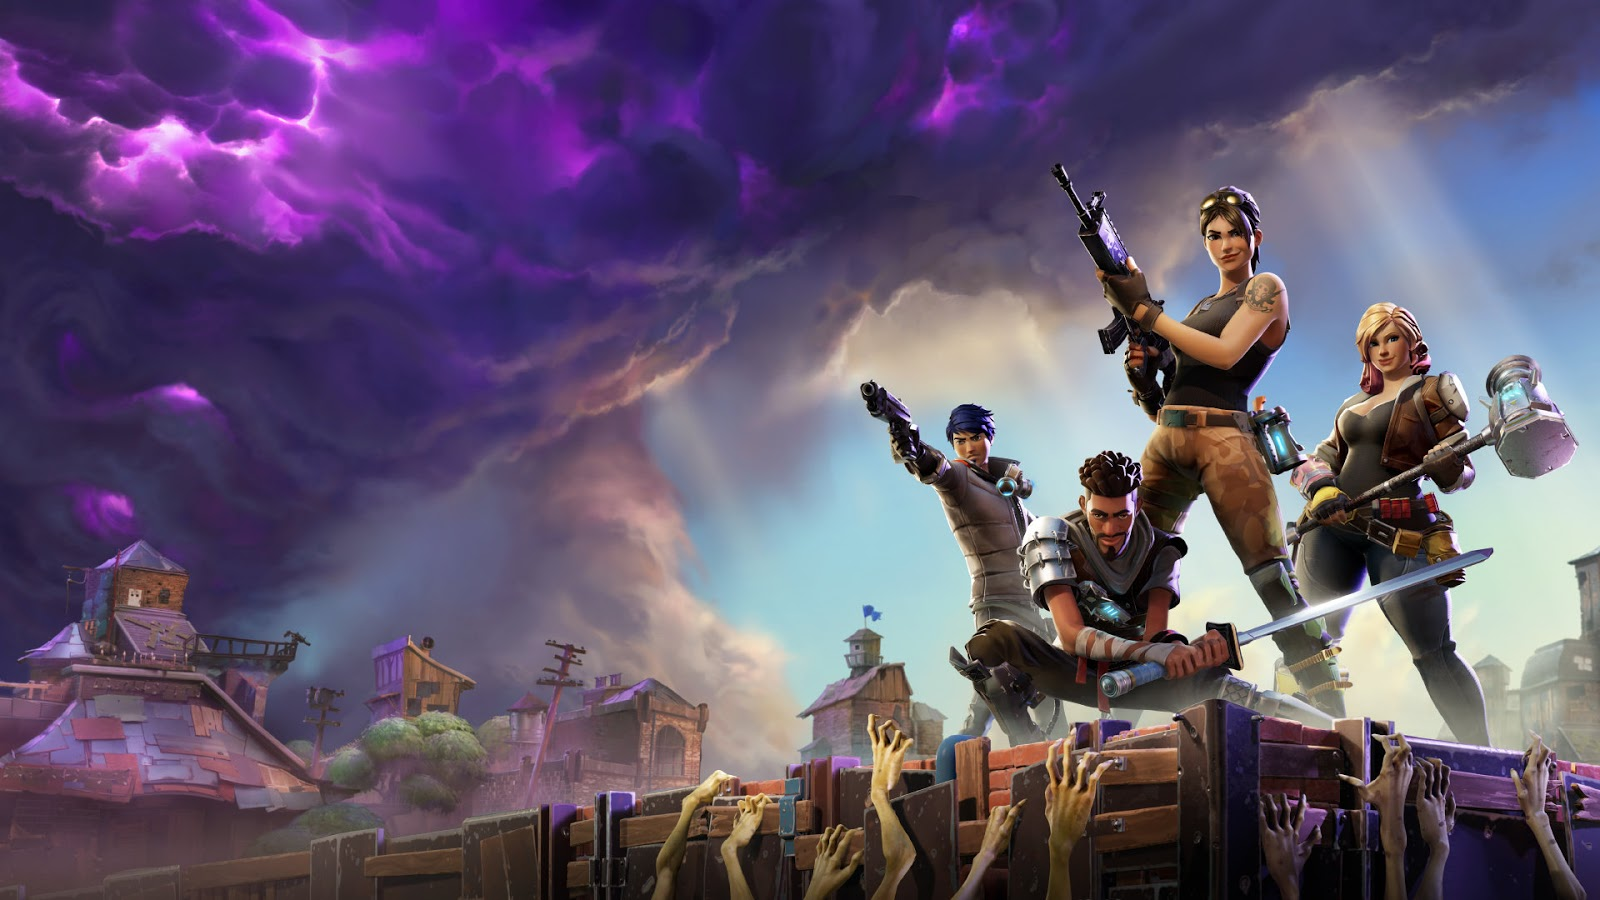 Fortnite Breaks YouTube Streaming Record